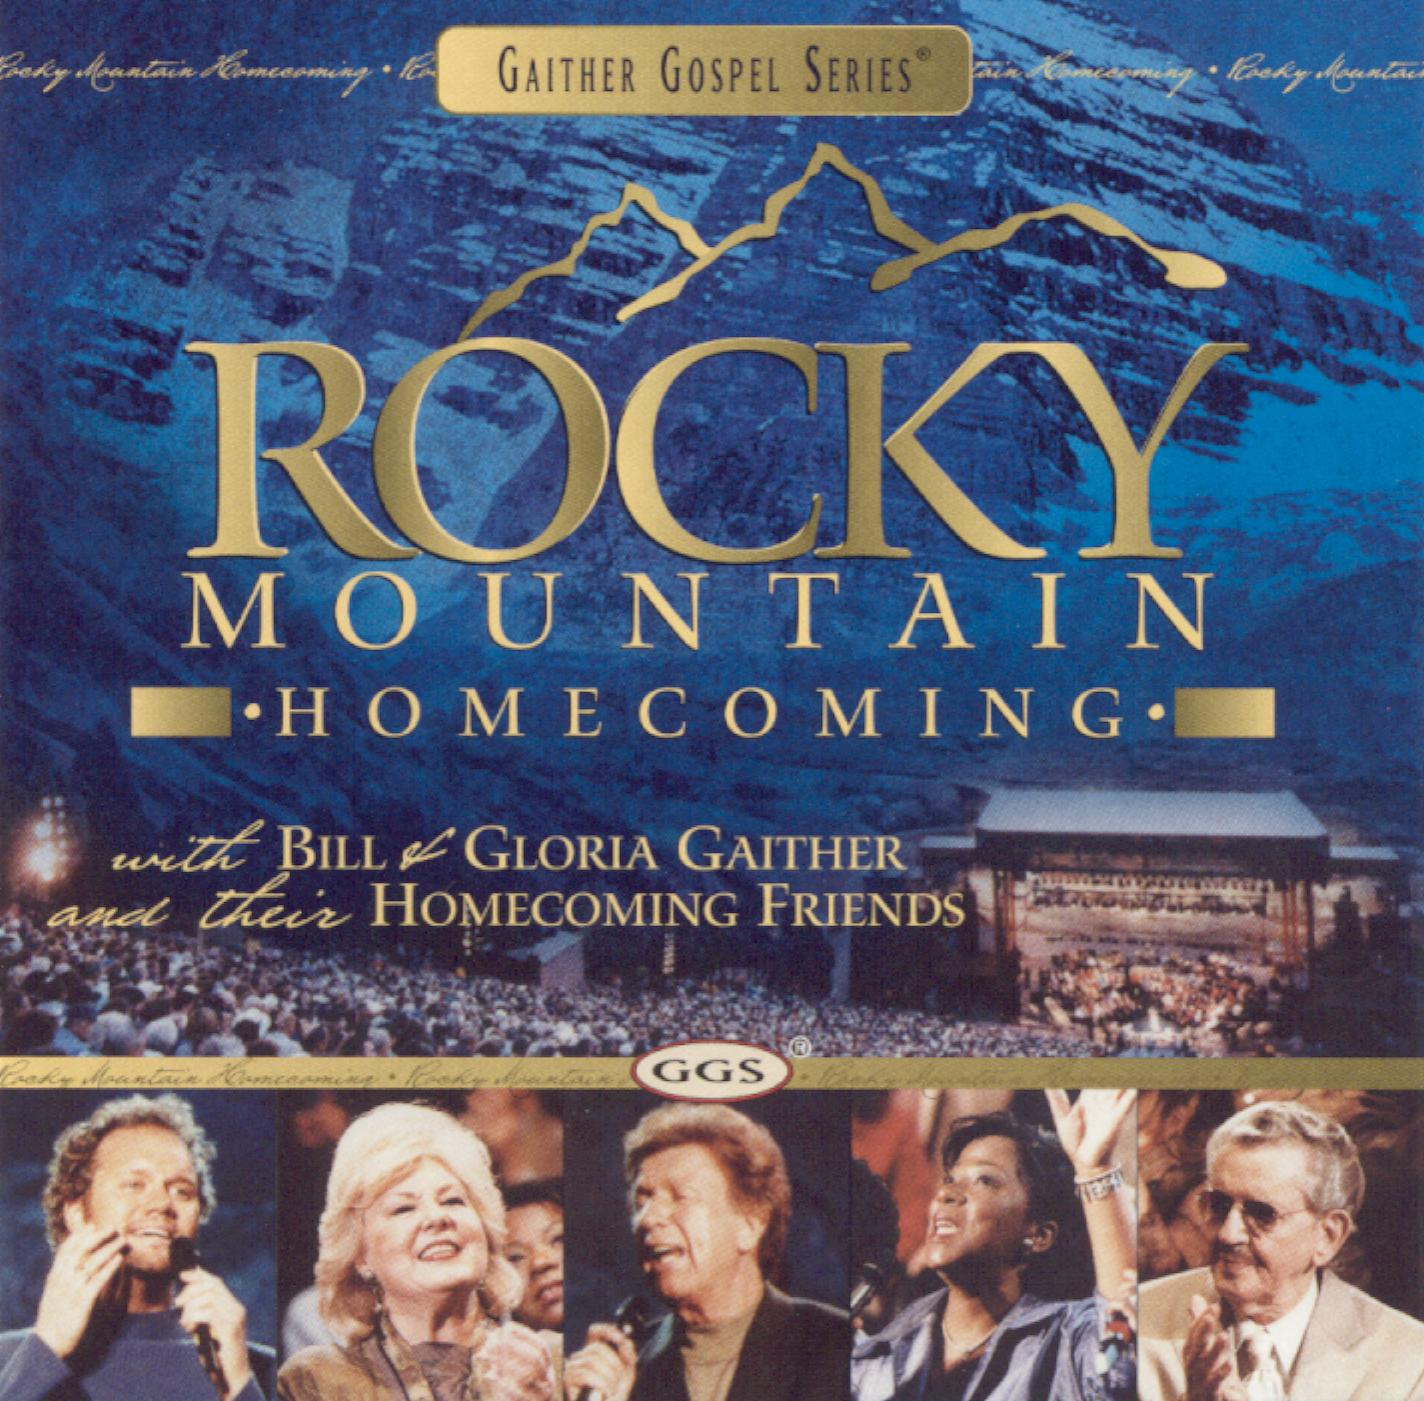 Bill and Gloria Gaither and Their Homecoming Friends: Rocky Mountain Homecoming